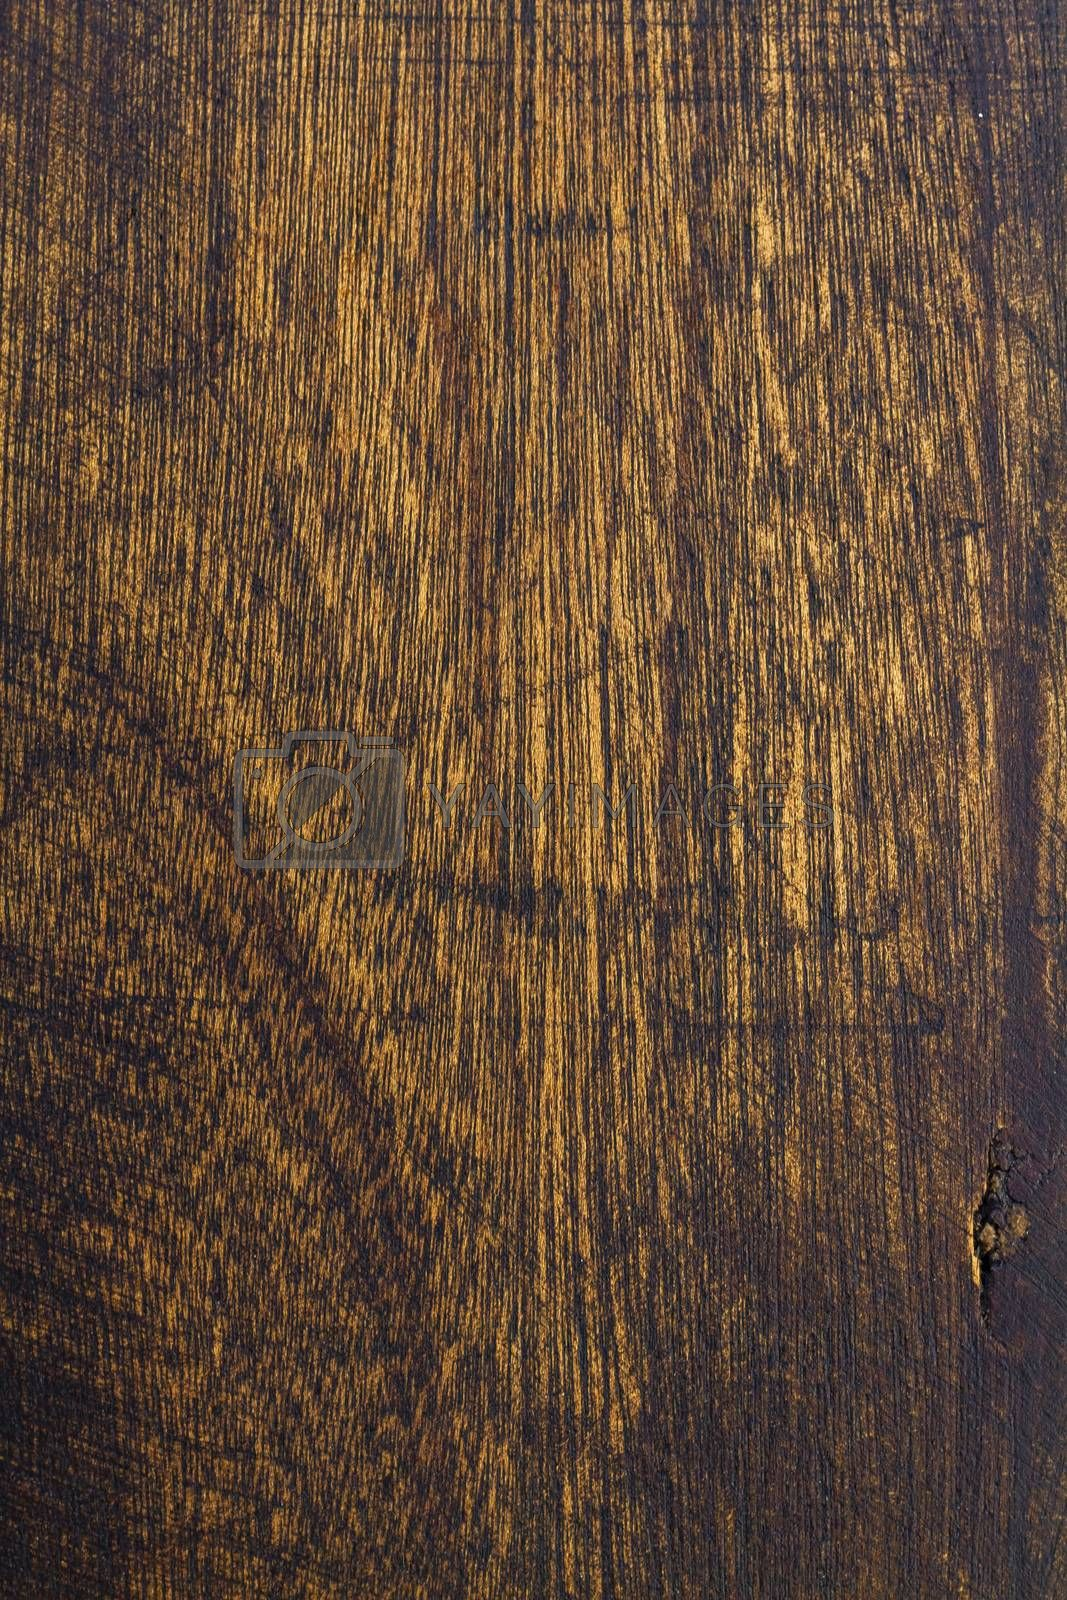 Background wood brown texture with natural patterns